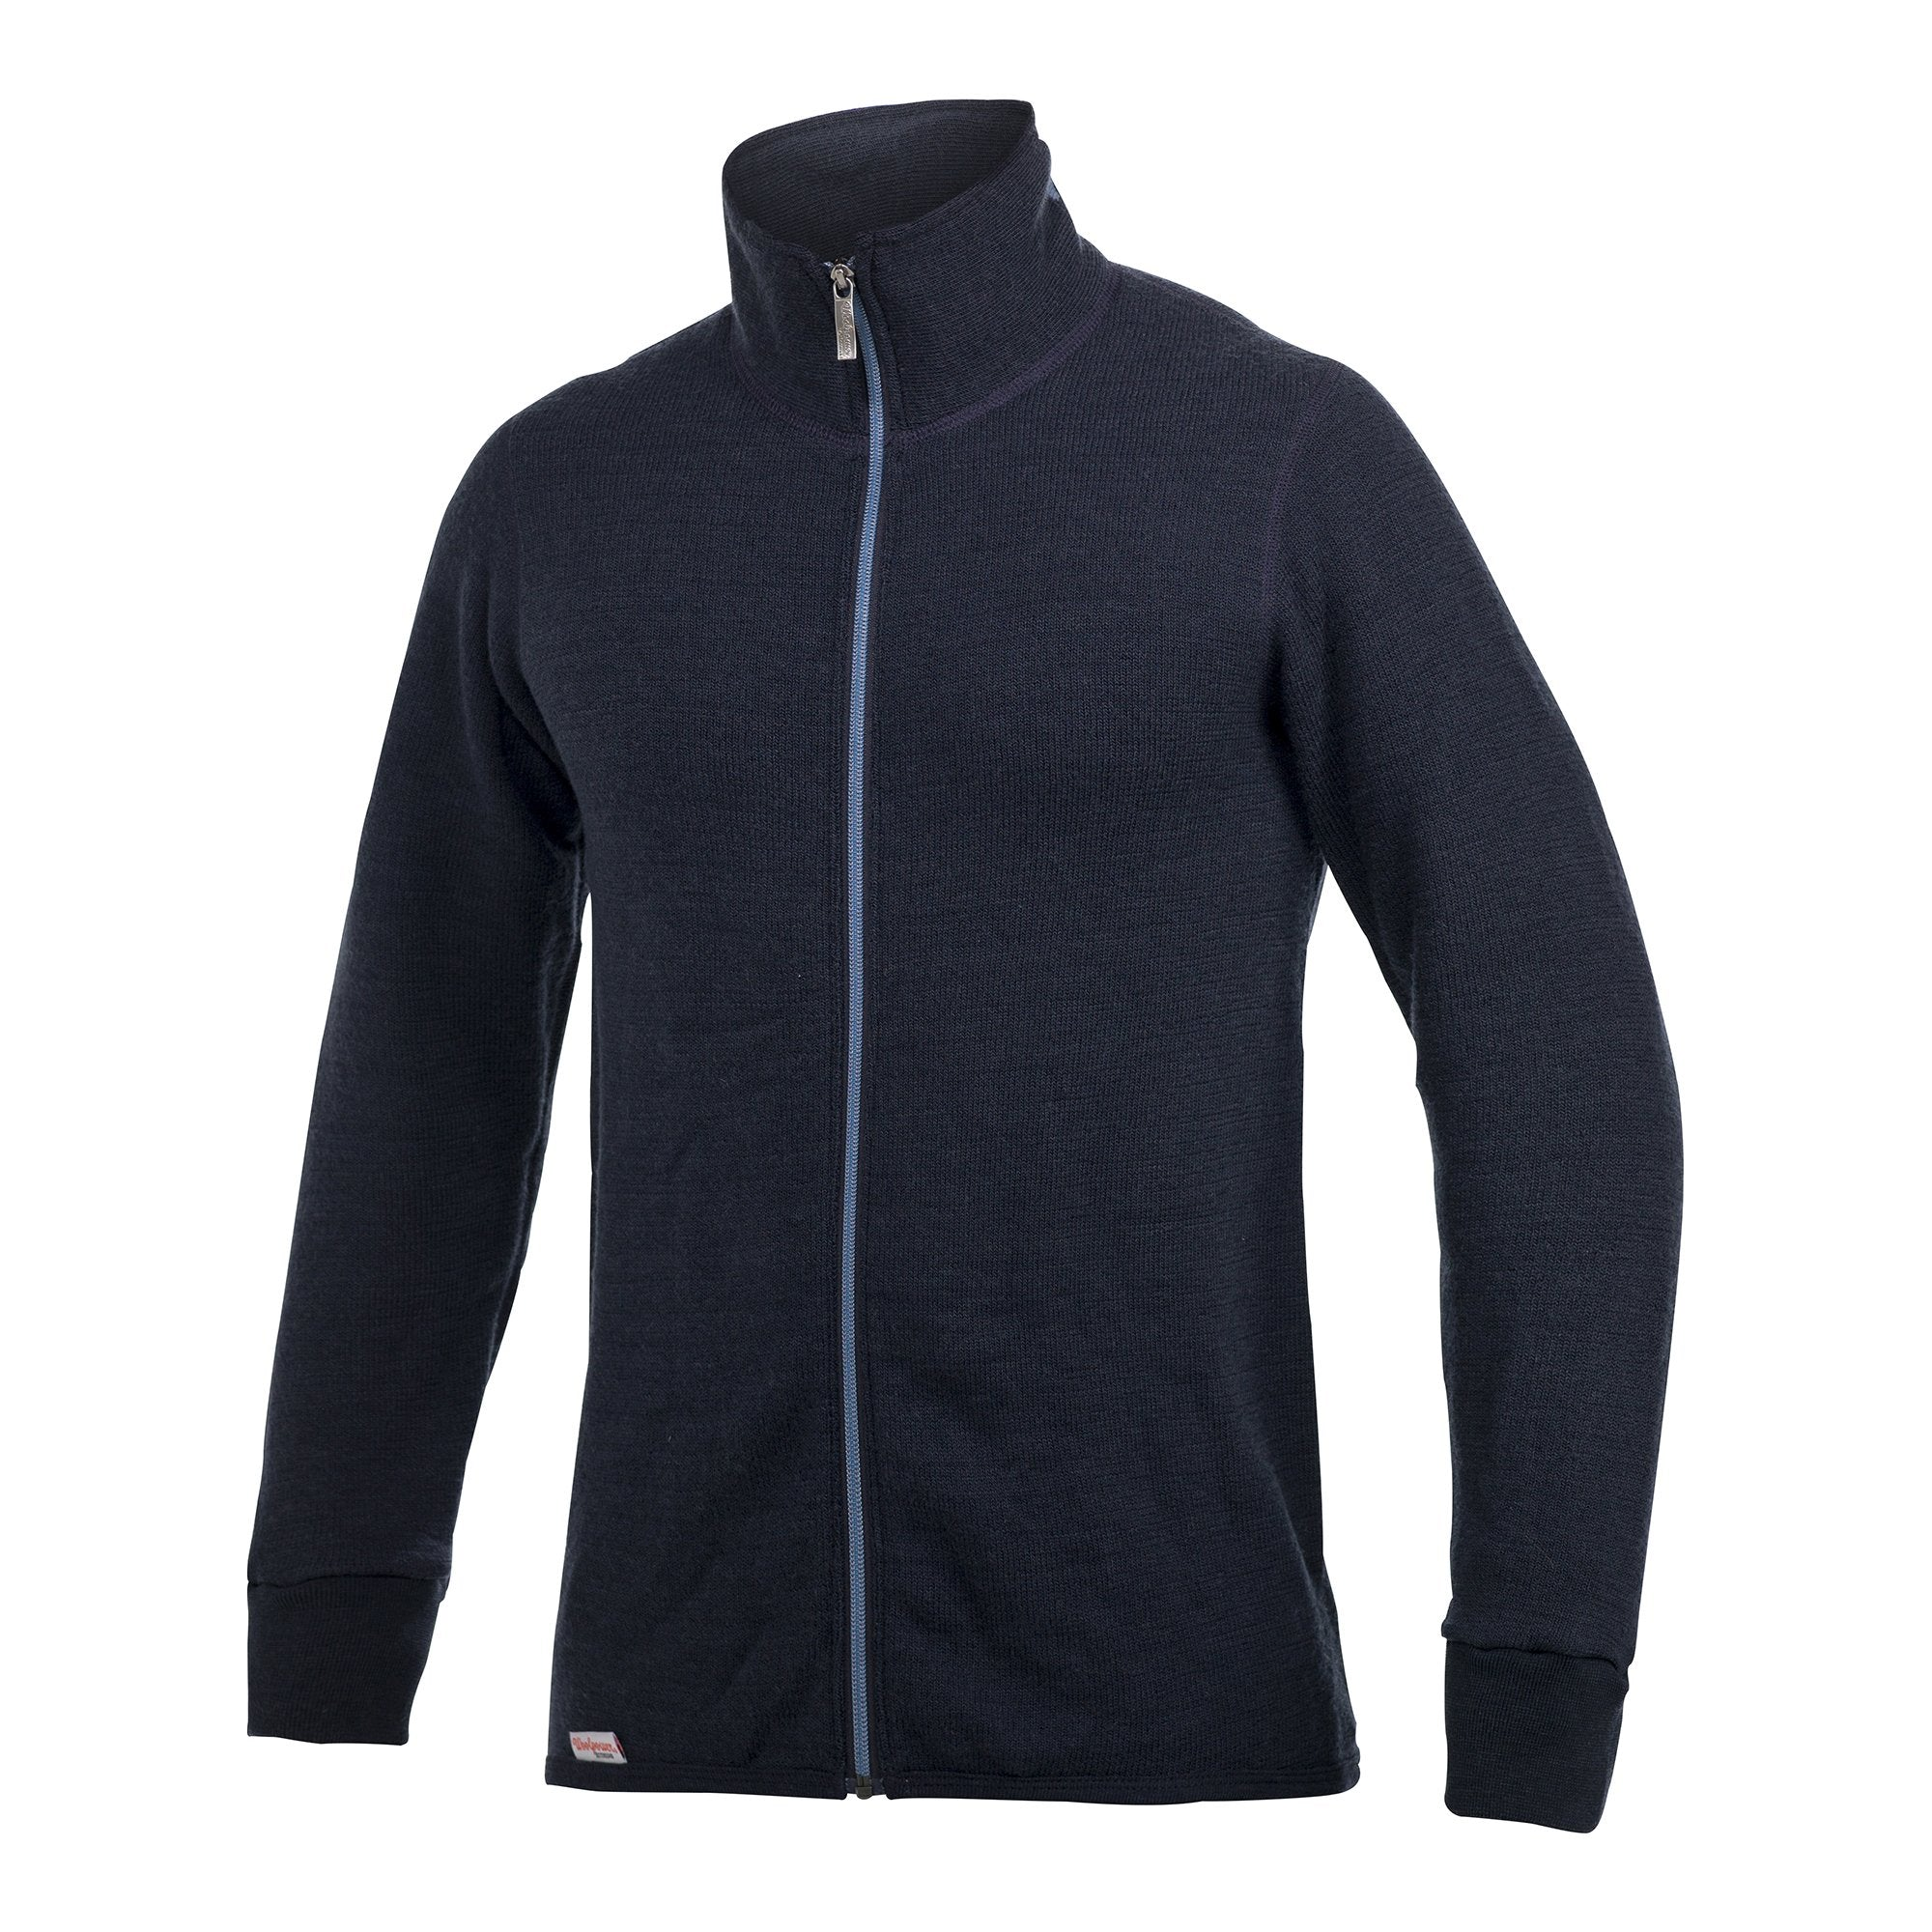 full zip jacket 400 cc - woolpower - dark navy / nordic blue